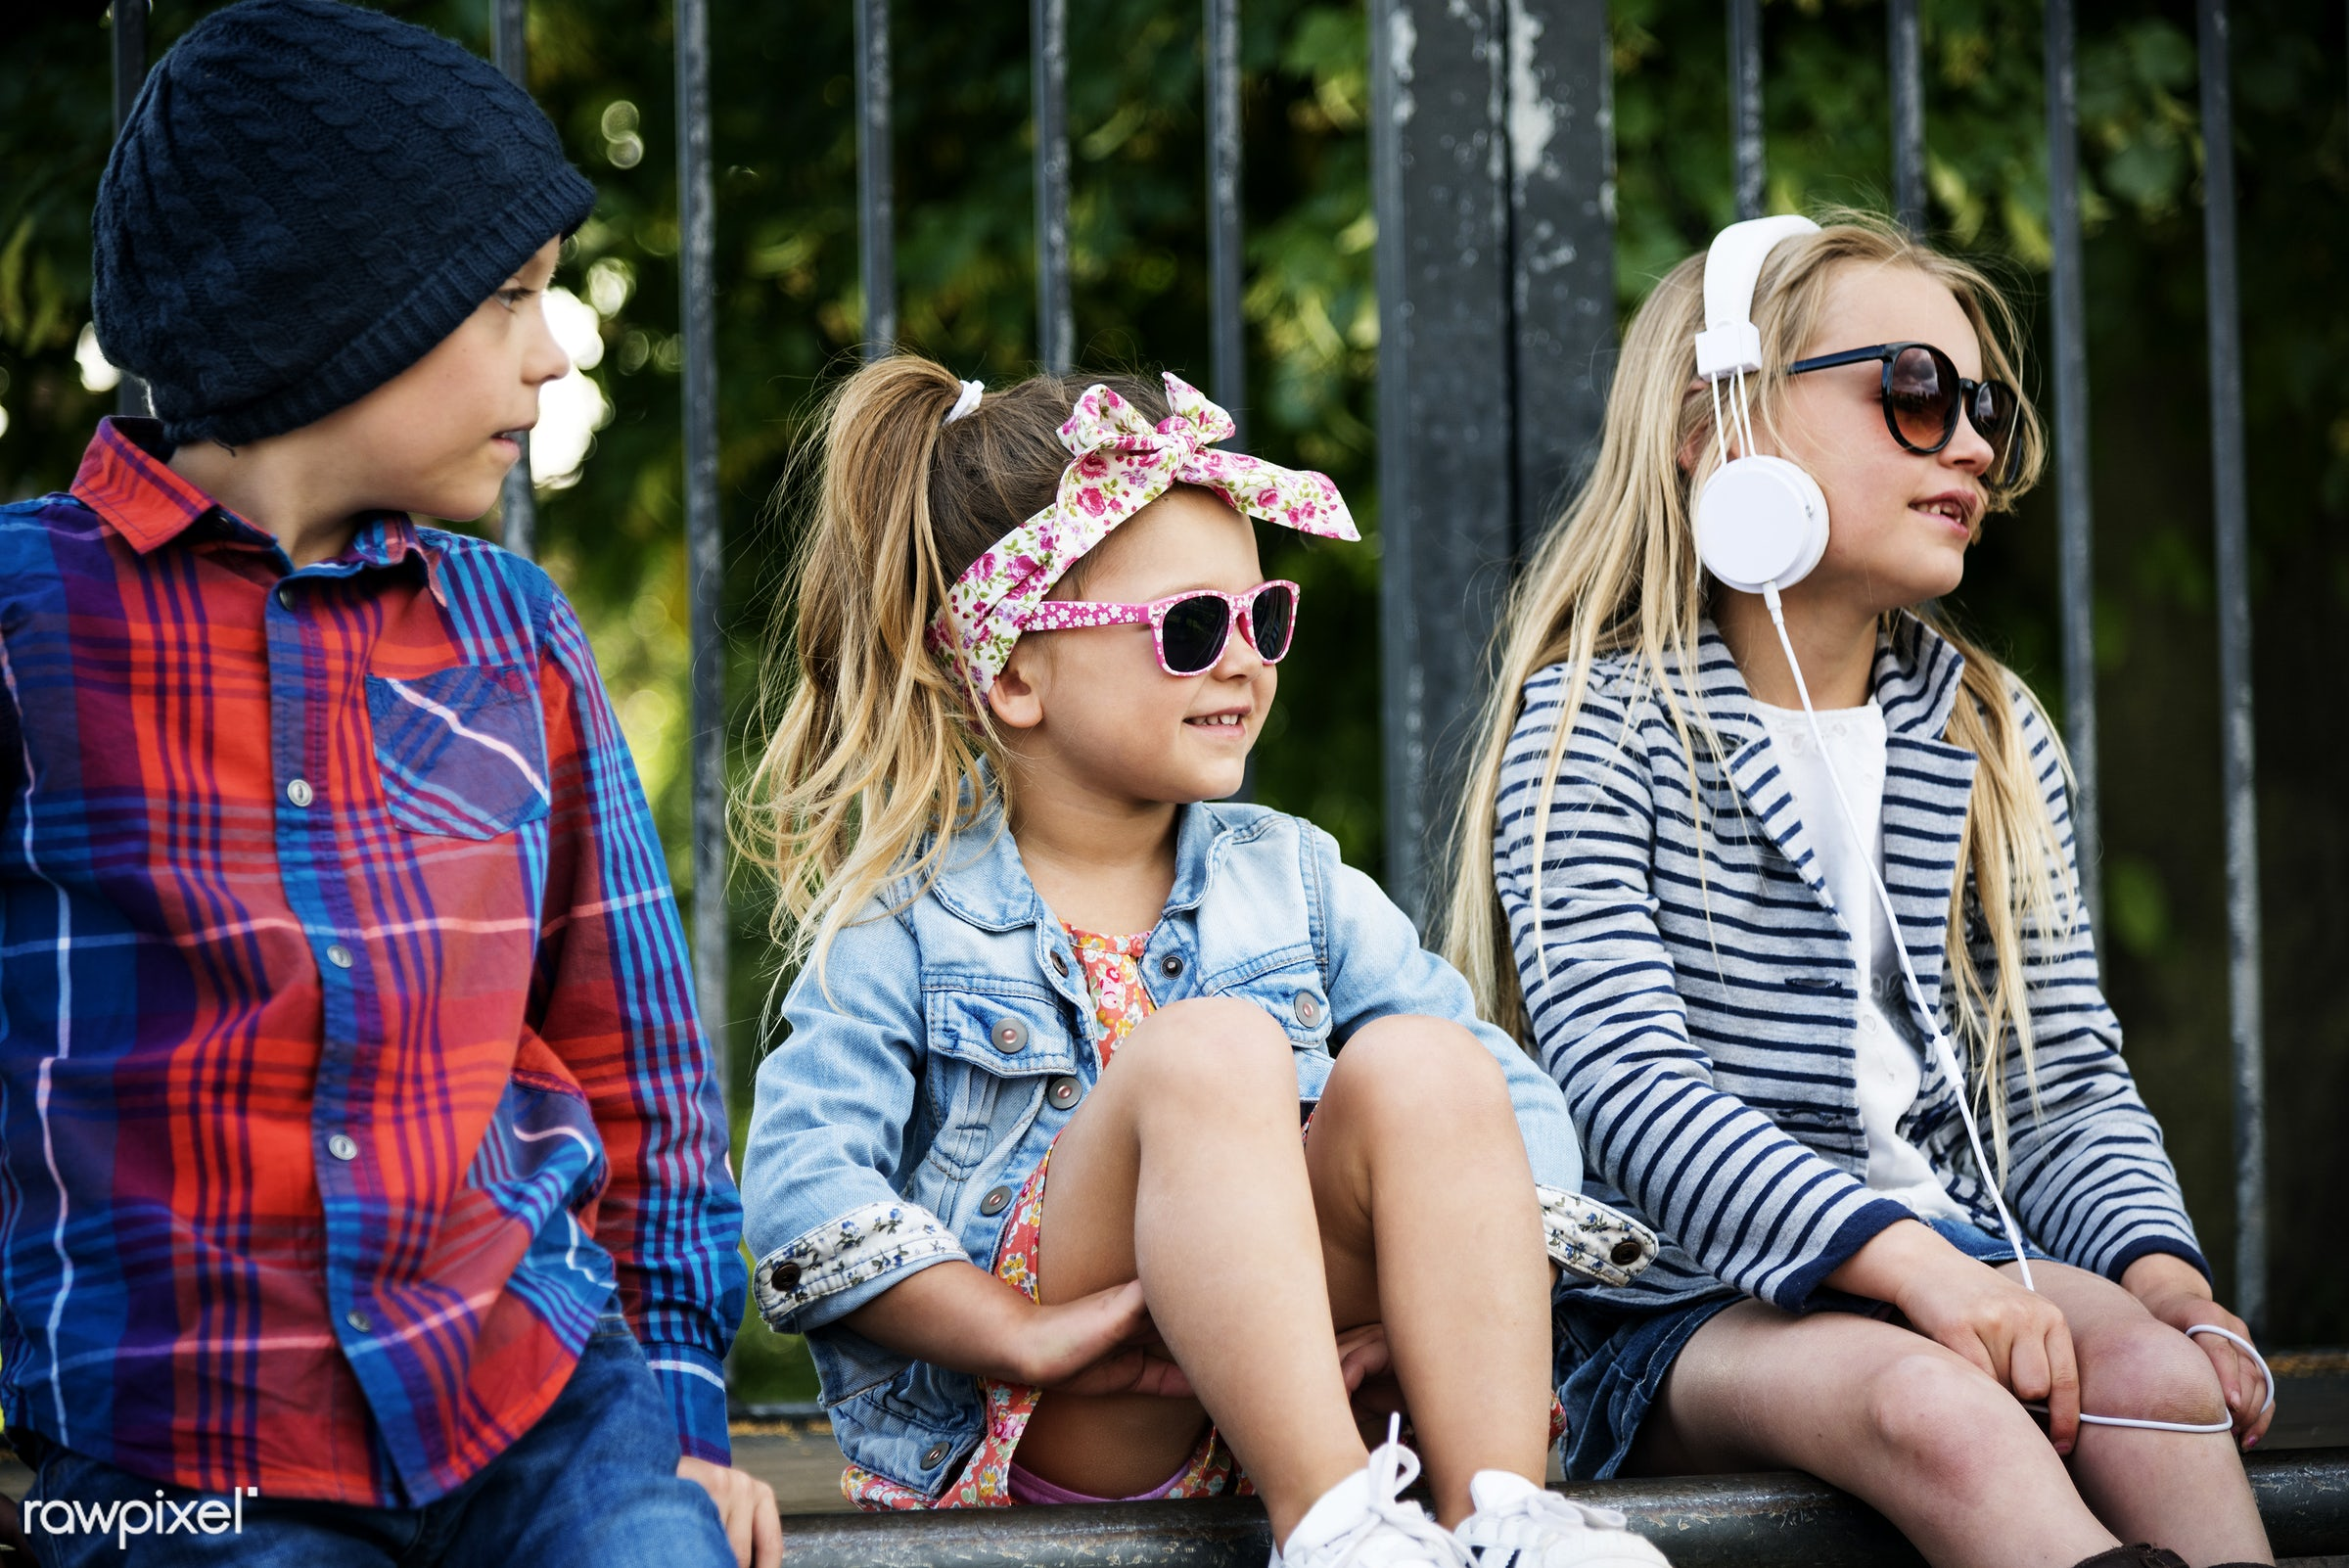 Caucasian children superhero and play shoot  - adorable, brother, casual, caucasian, cheerful, chic, child, childhood,...